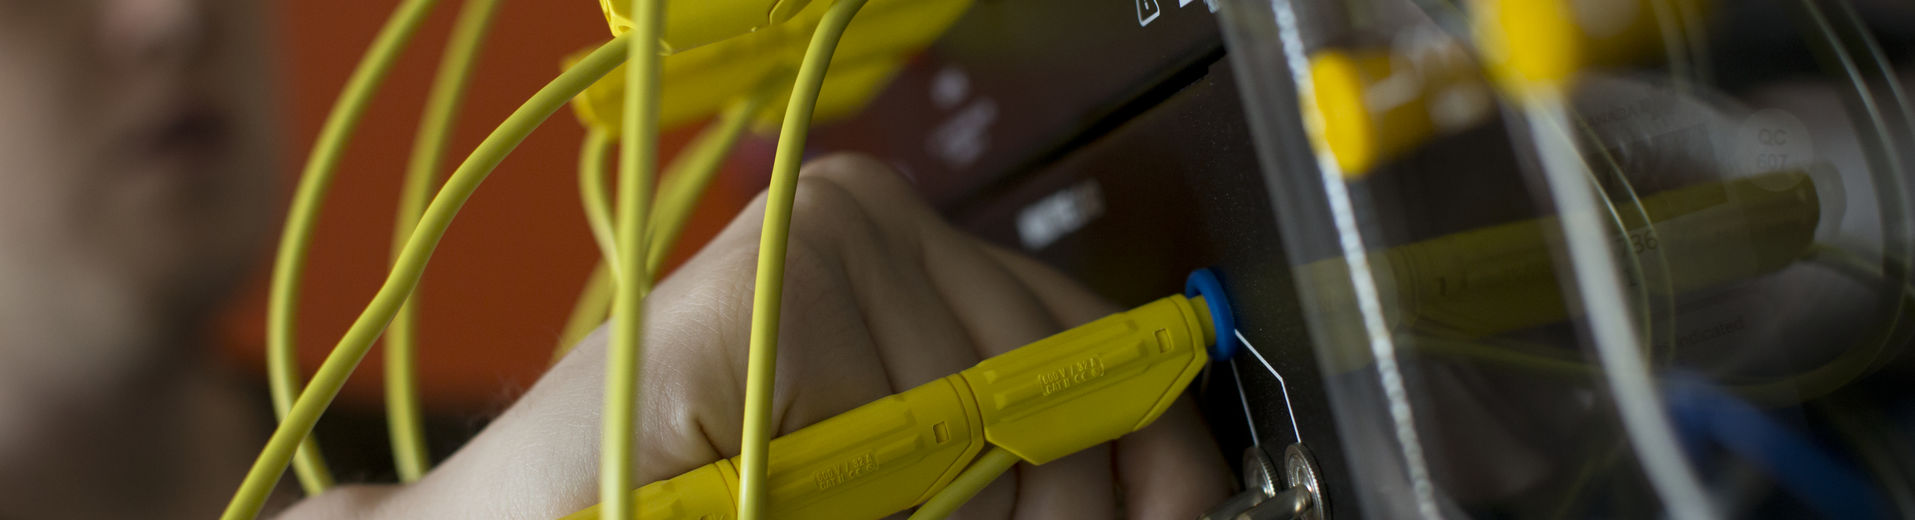 Close-up image of a students hand manipulating wires on a control board